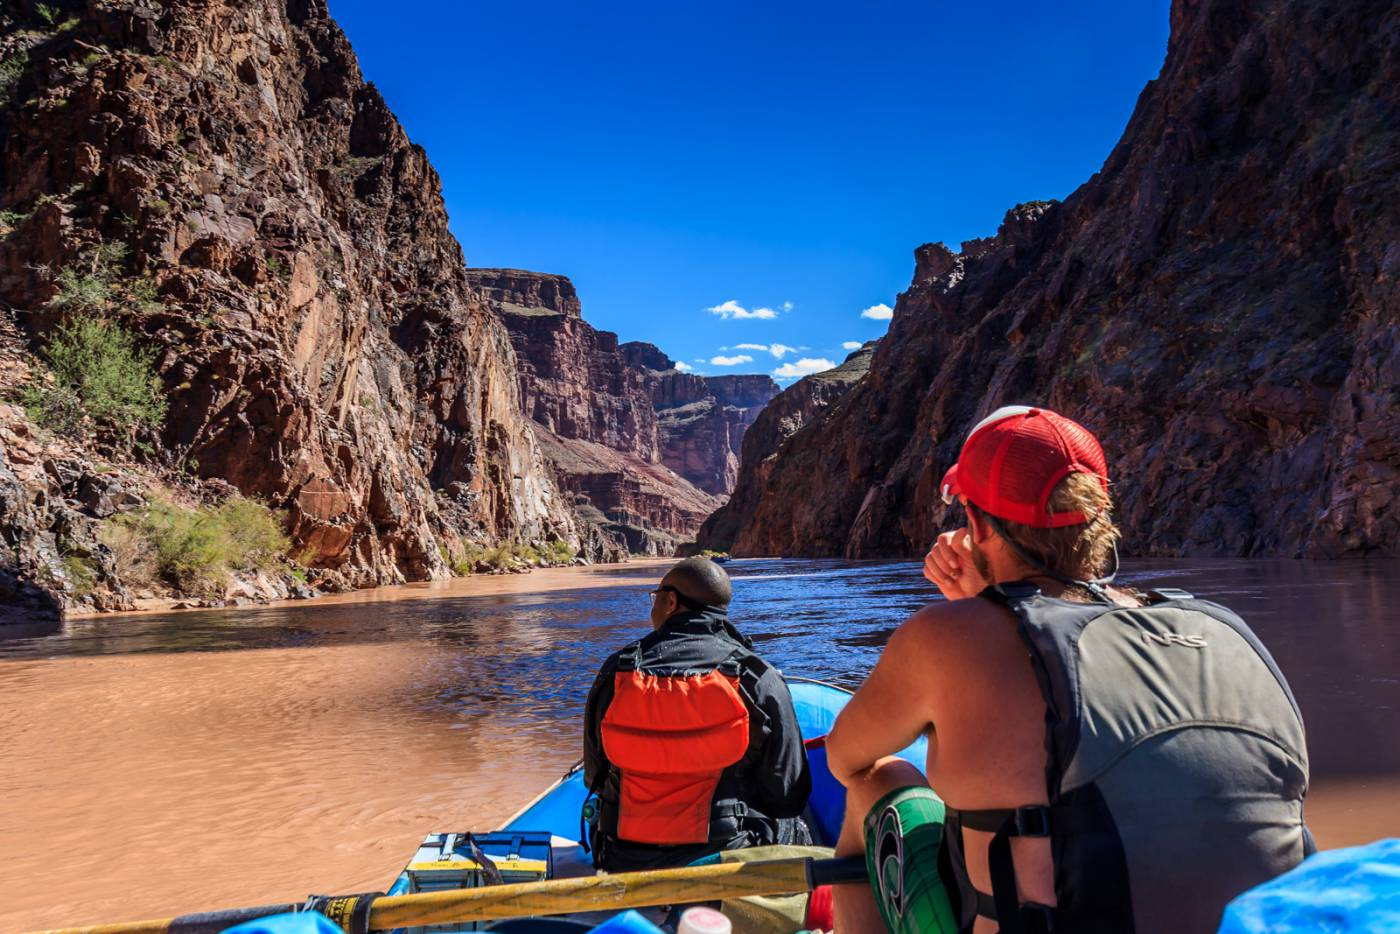 Our guide takes a break as we float through the Colorado River gorge.